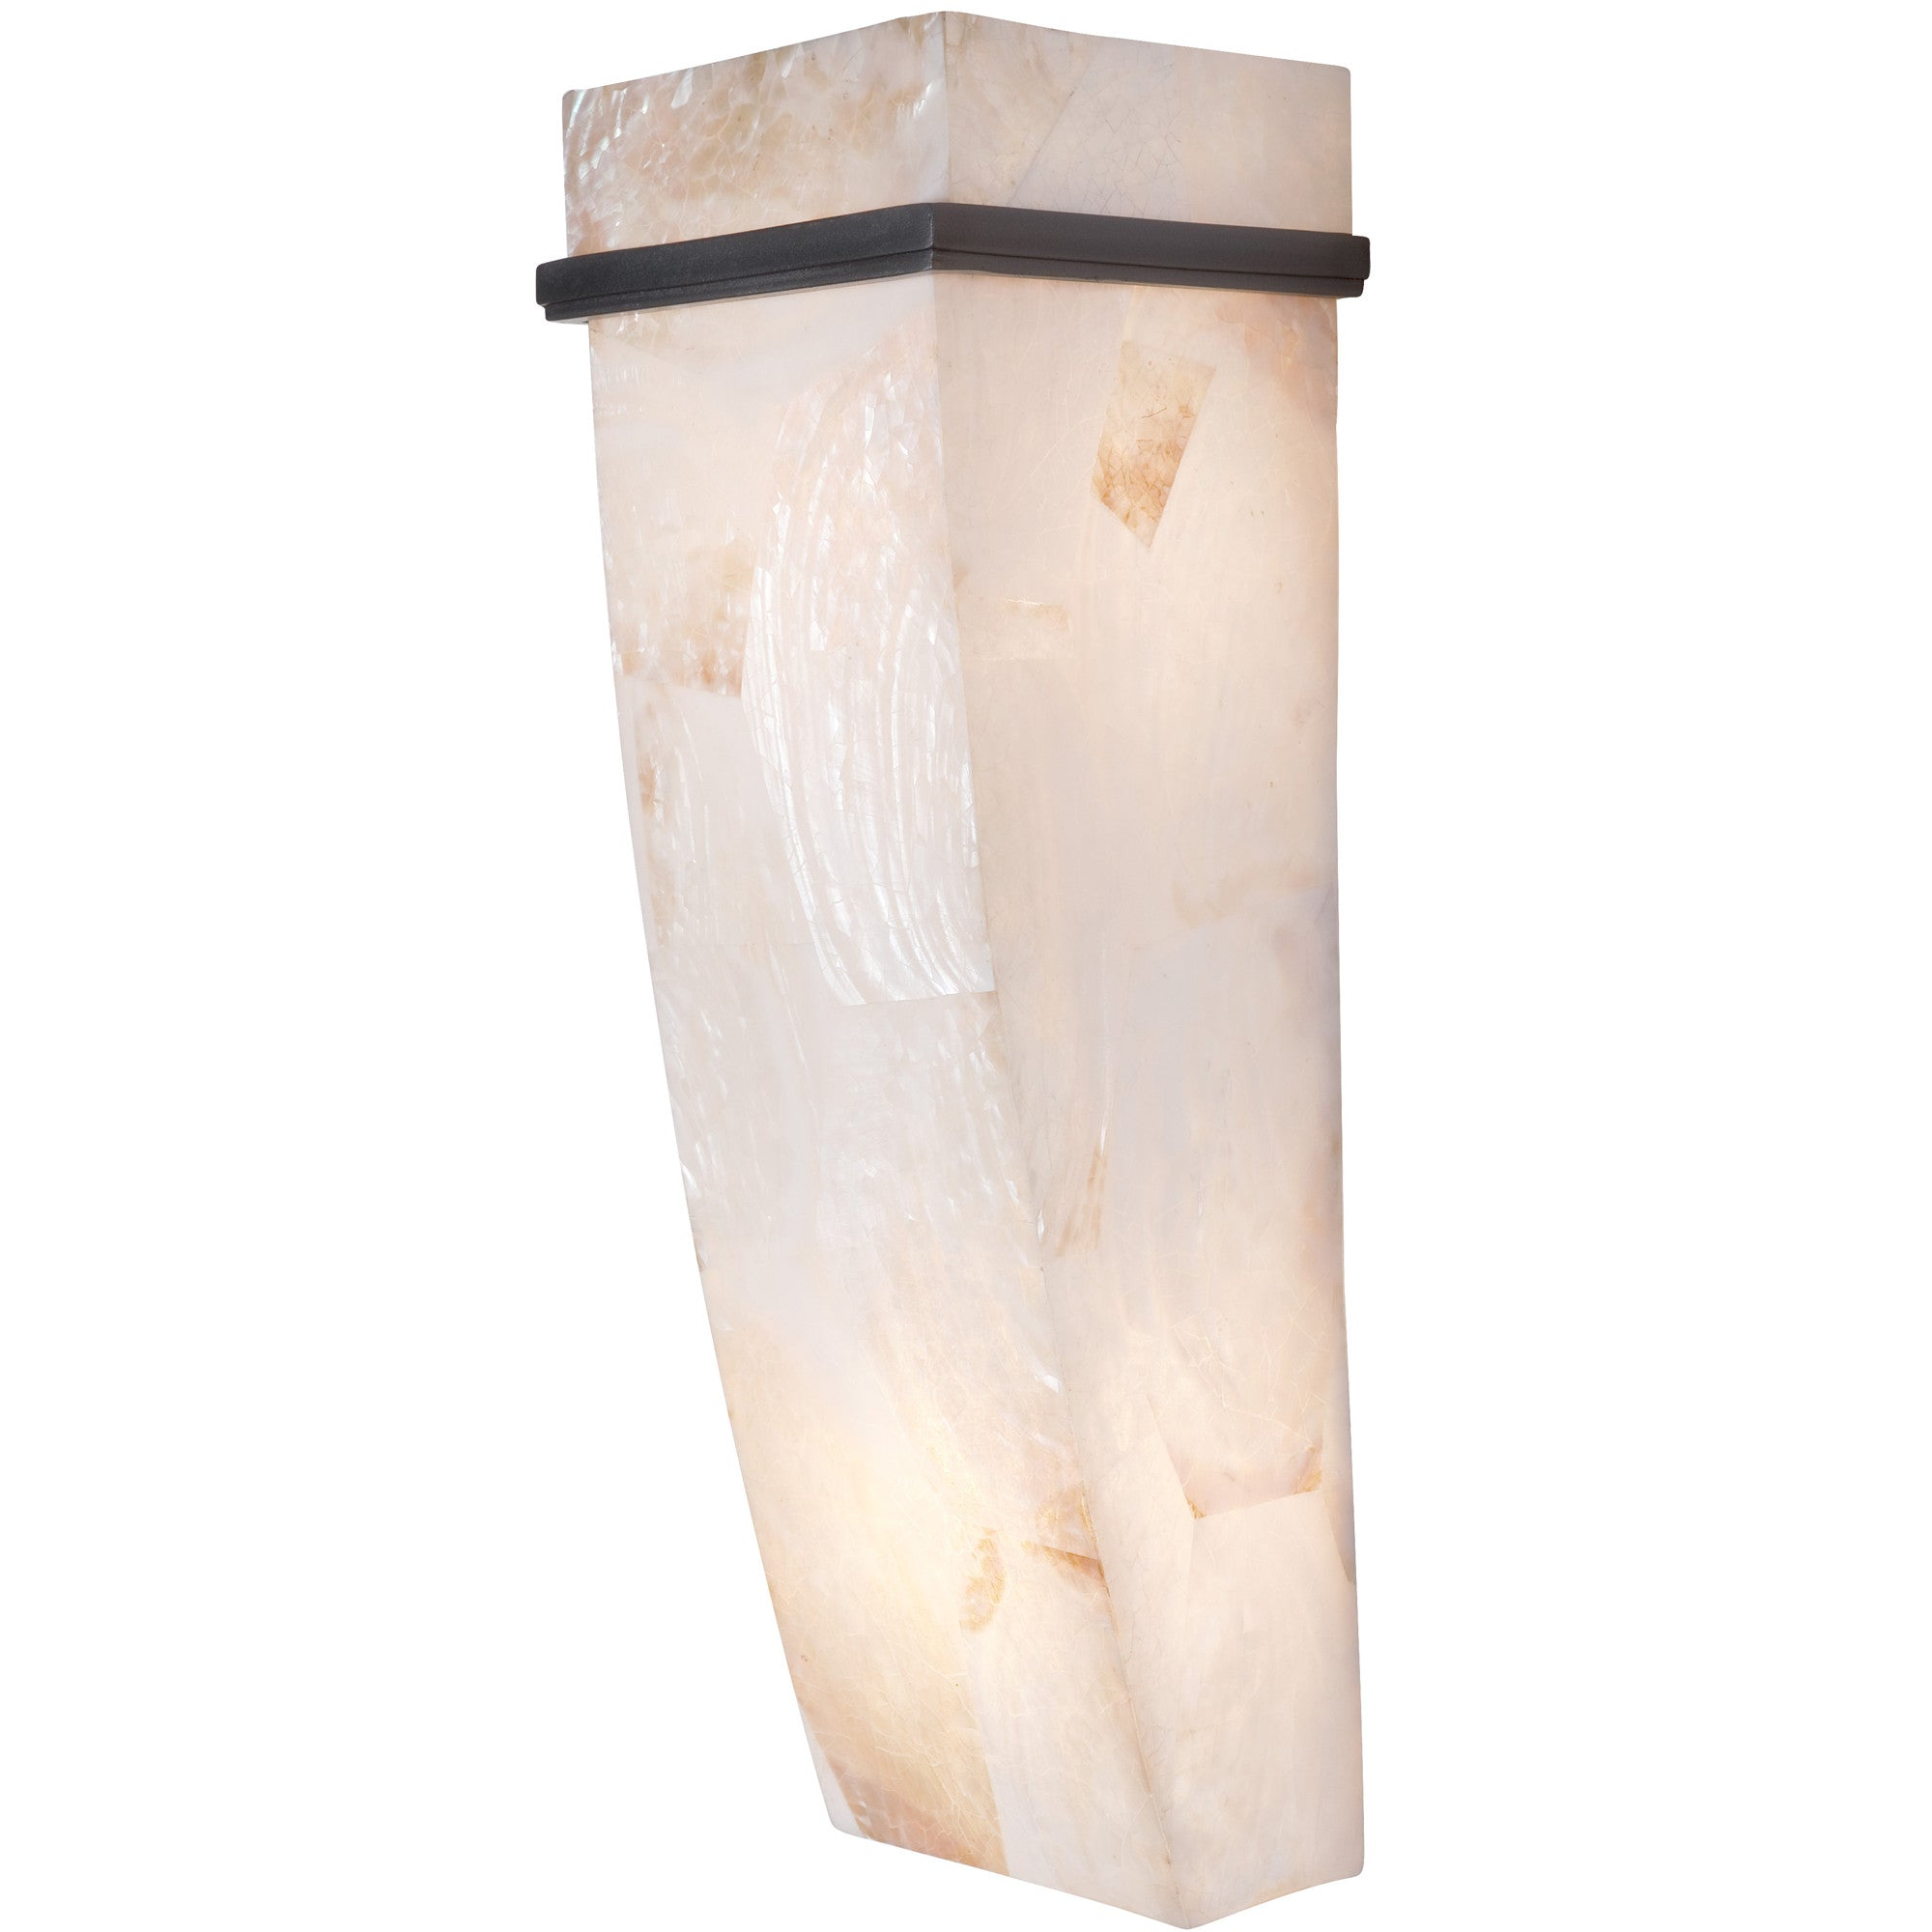 Big 178K02A 2-Lt Wall Sconce - Kabebe Shell